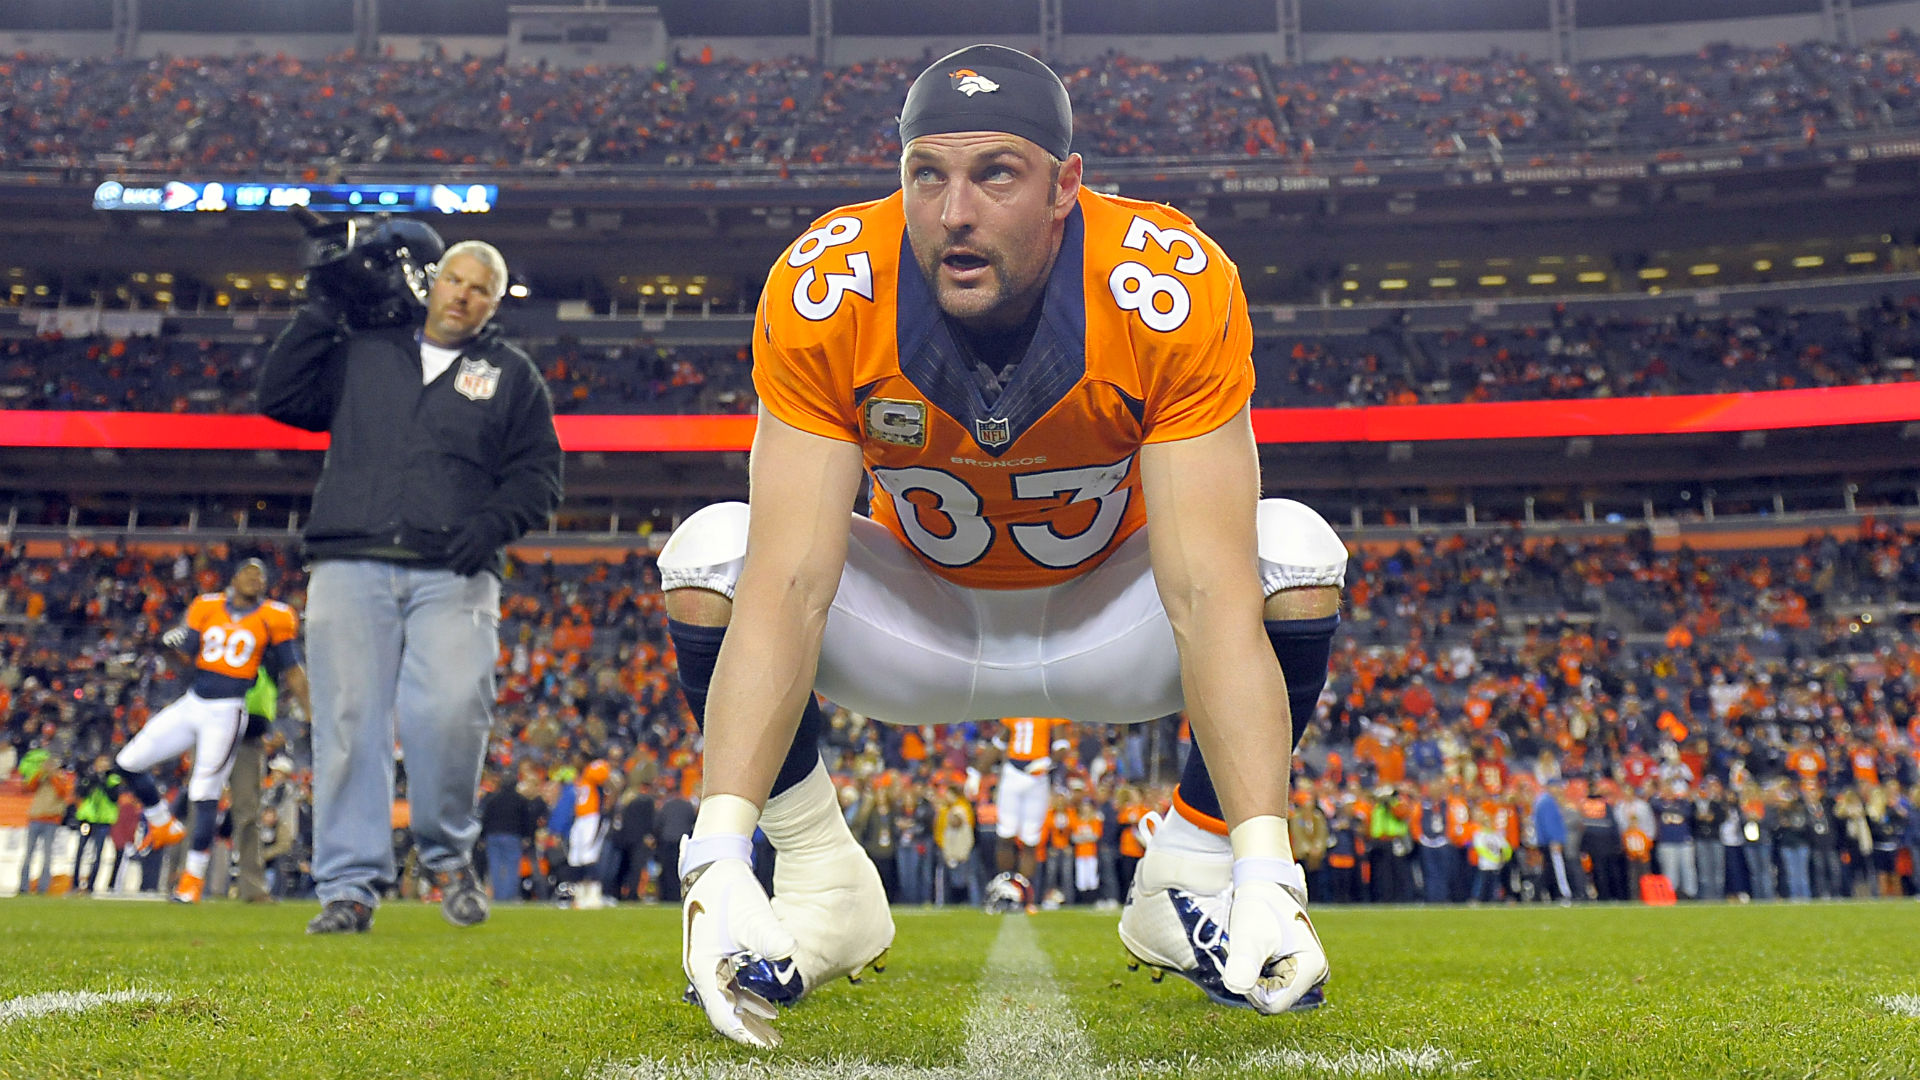 New NFL drug policy approved, Welker eligible to play in Week 3, Gordon in Week 12